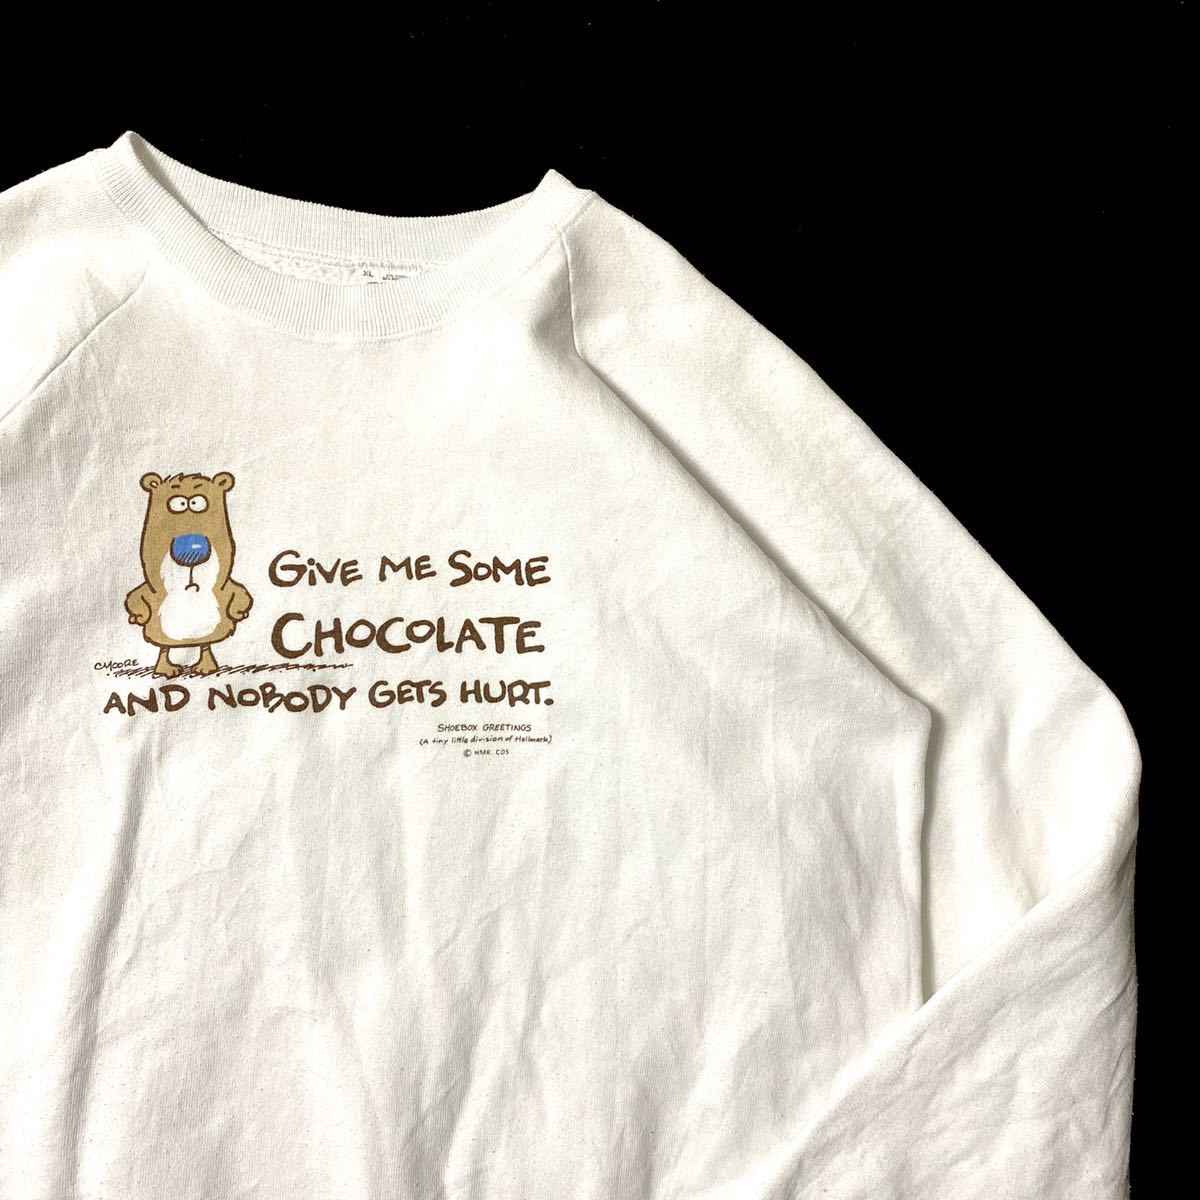 90s fruit of the room white printed sweatshirts / made in usa / size XL 90年代 フルーツ スウェット アメリカ製 アメカジ カジュアル